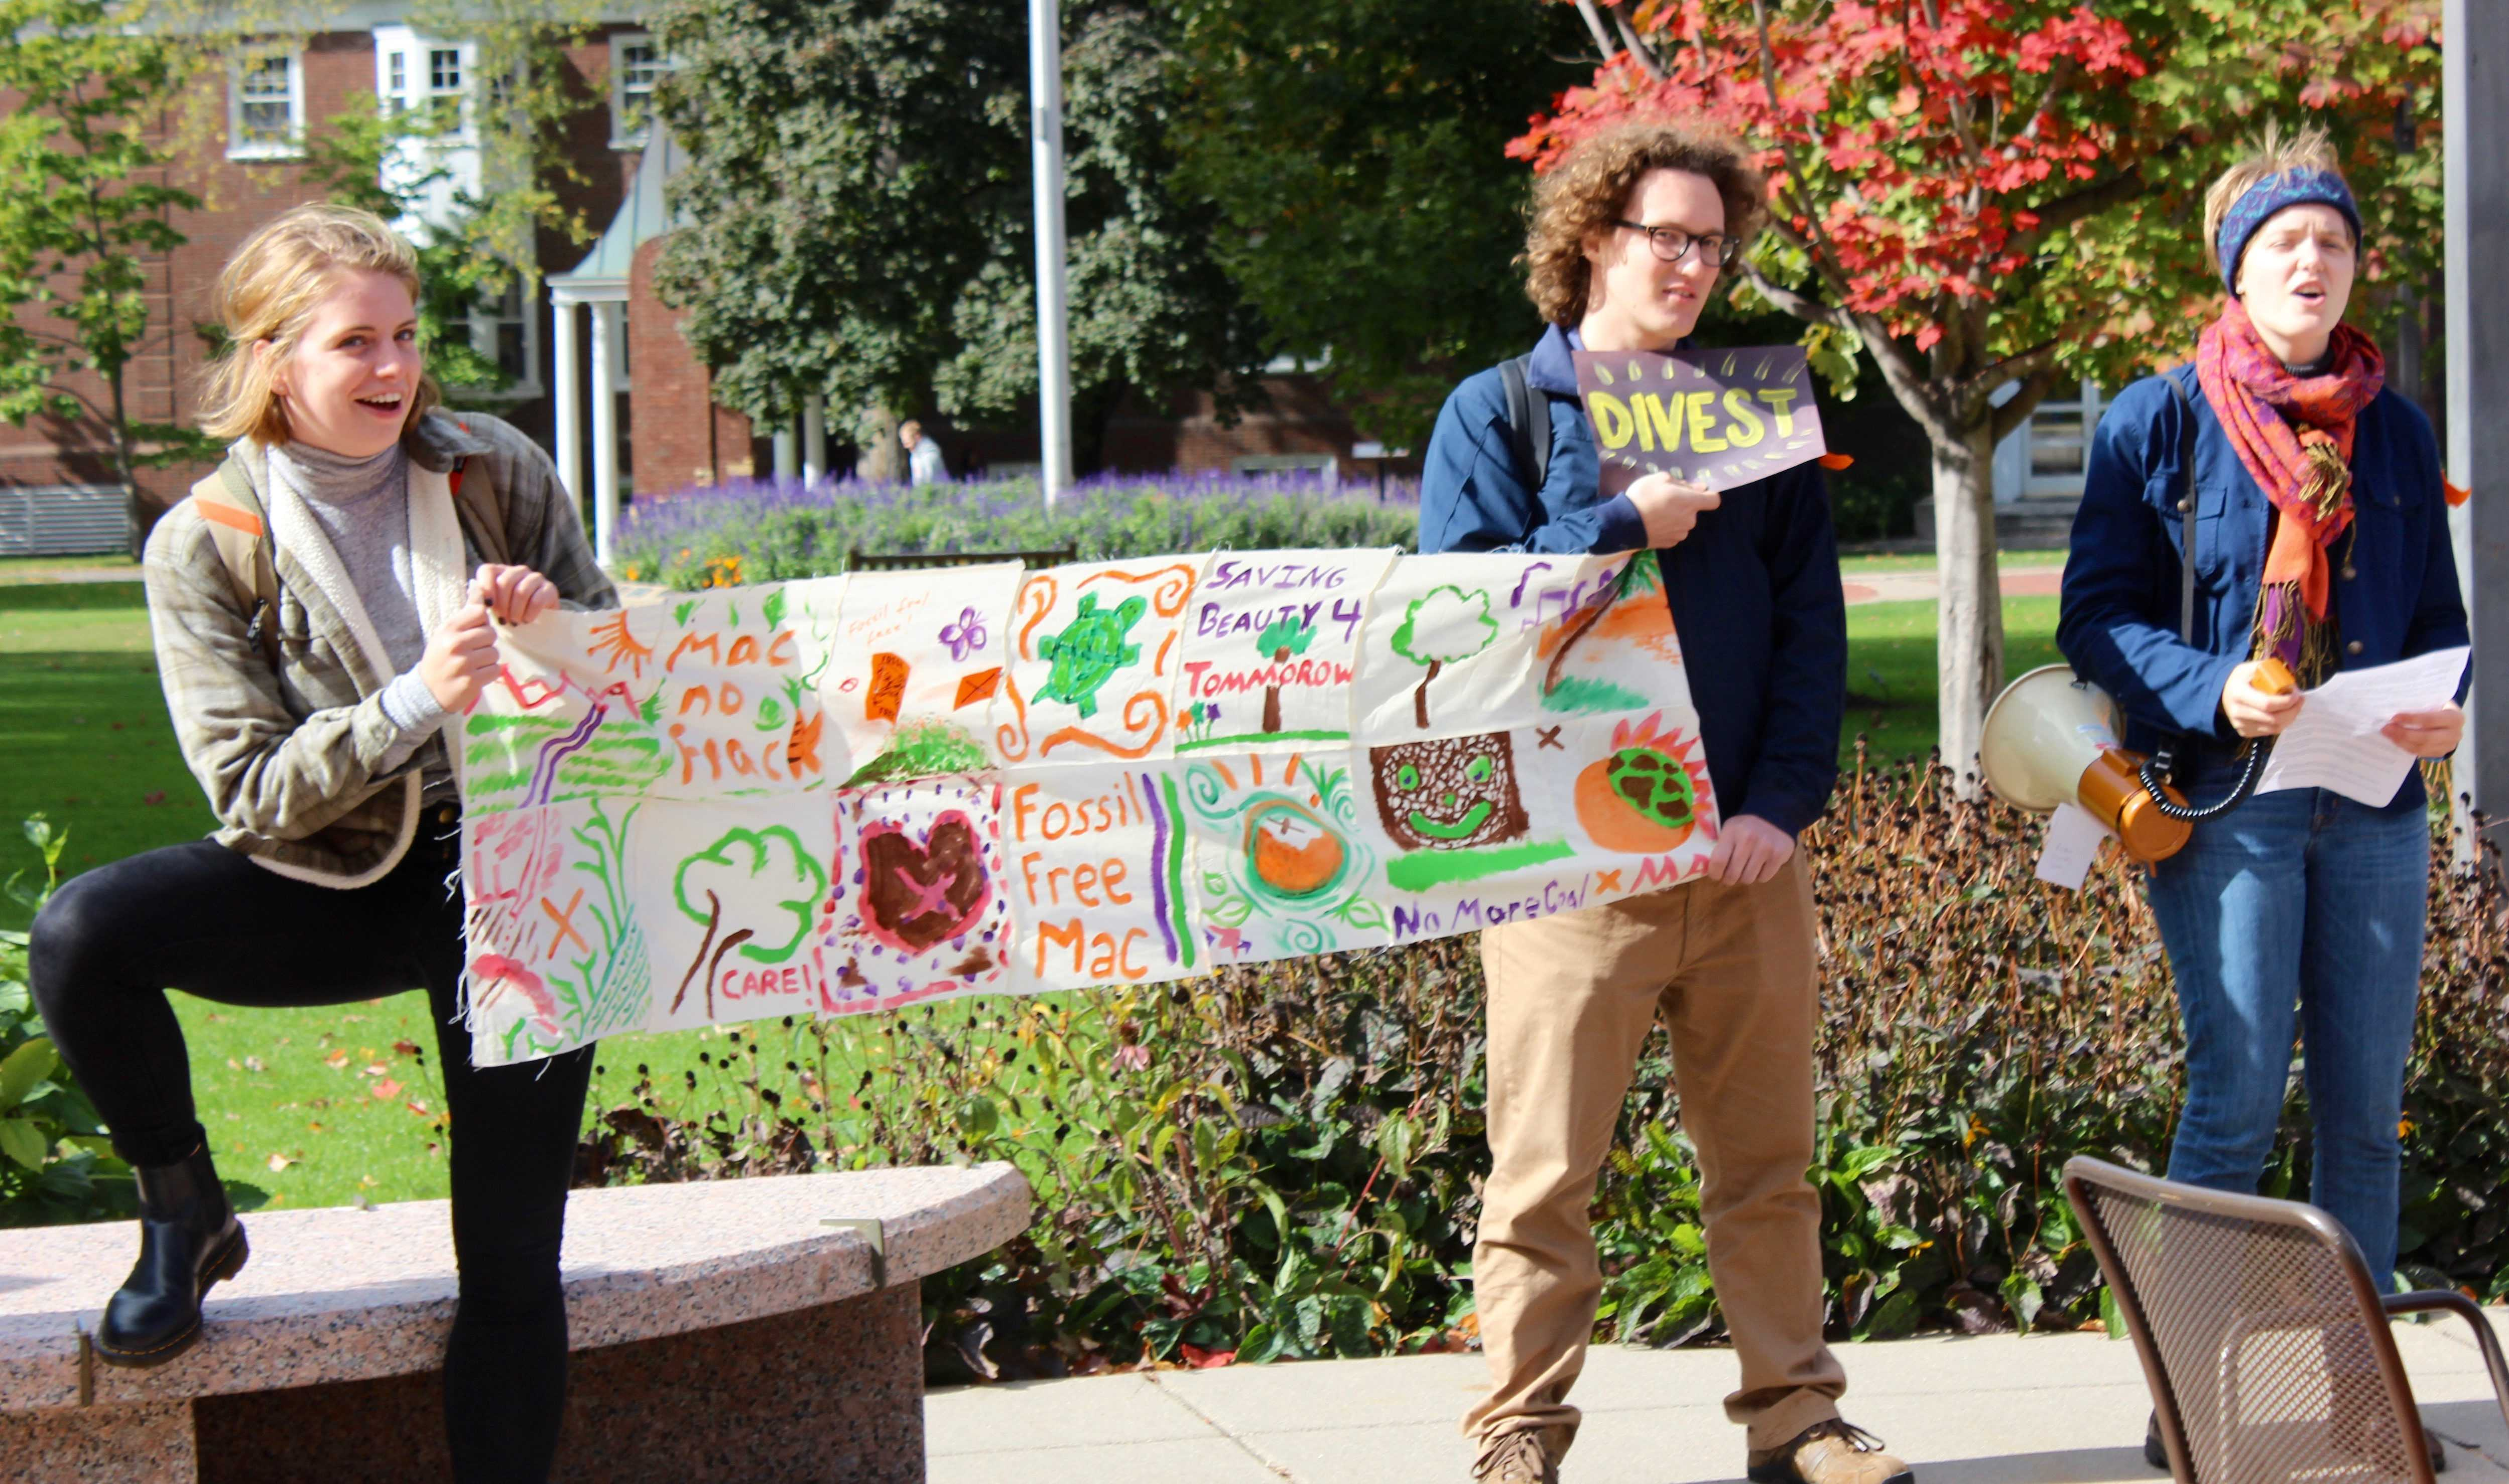 Fossil Free Mac demonstrates during Board of Trustees' visit